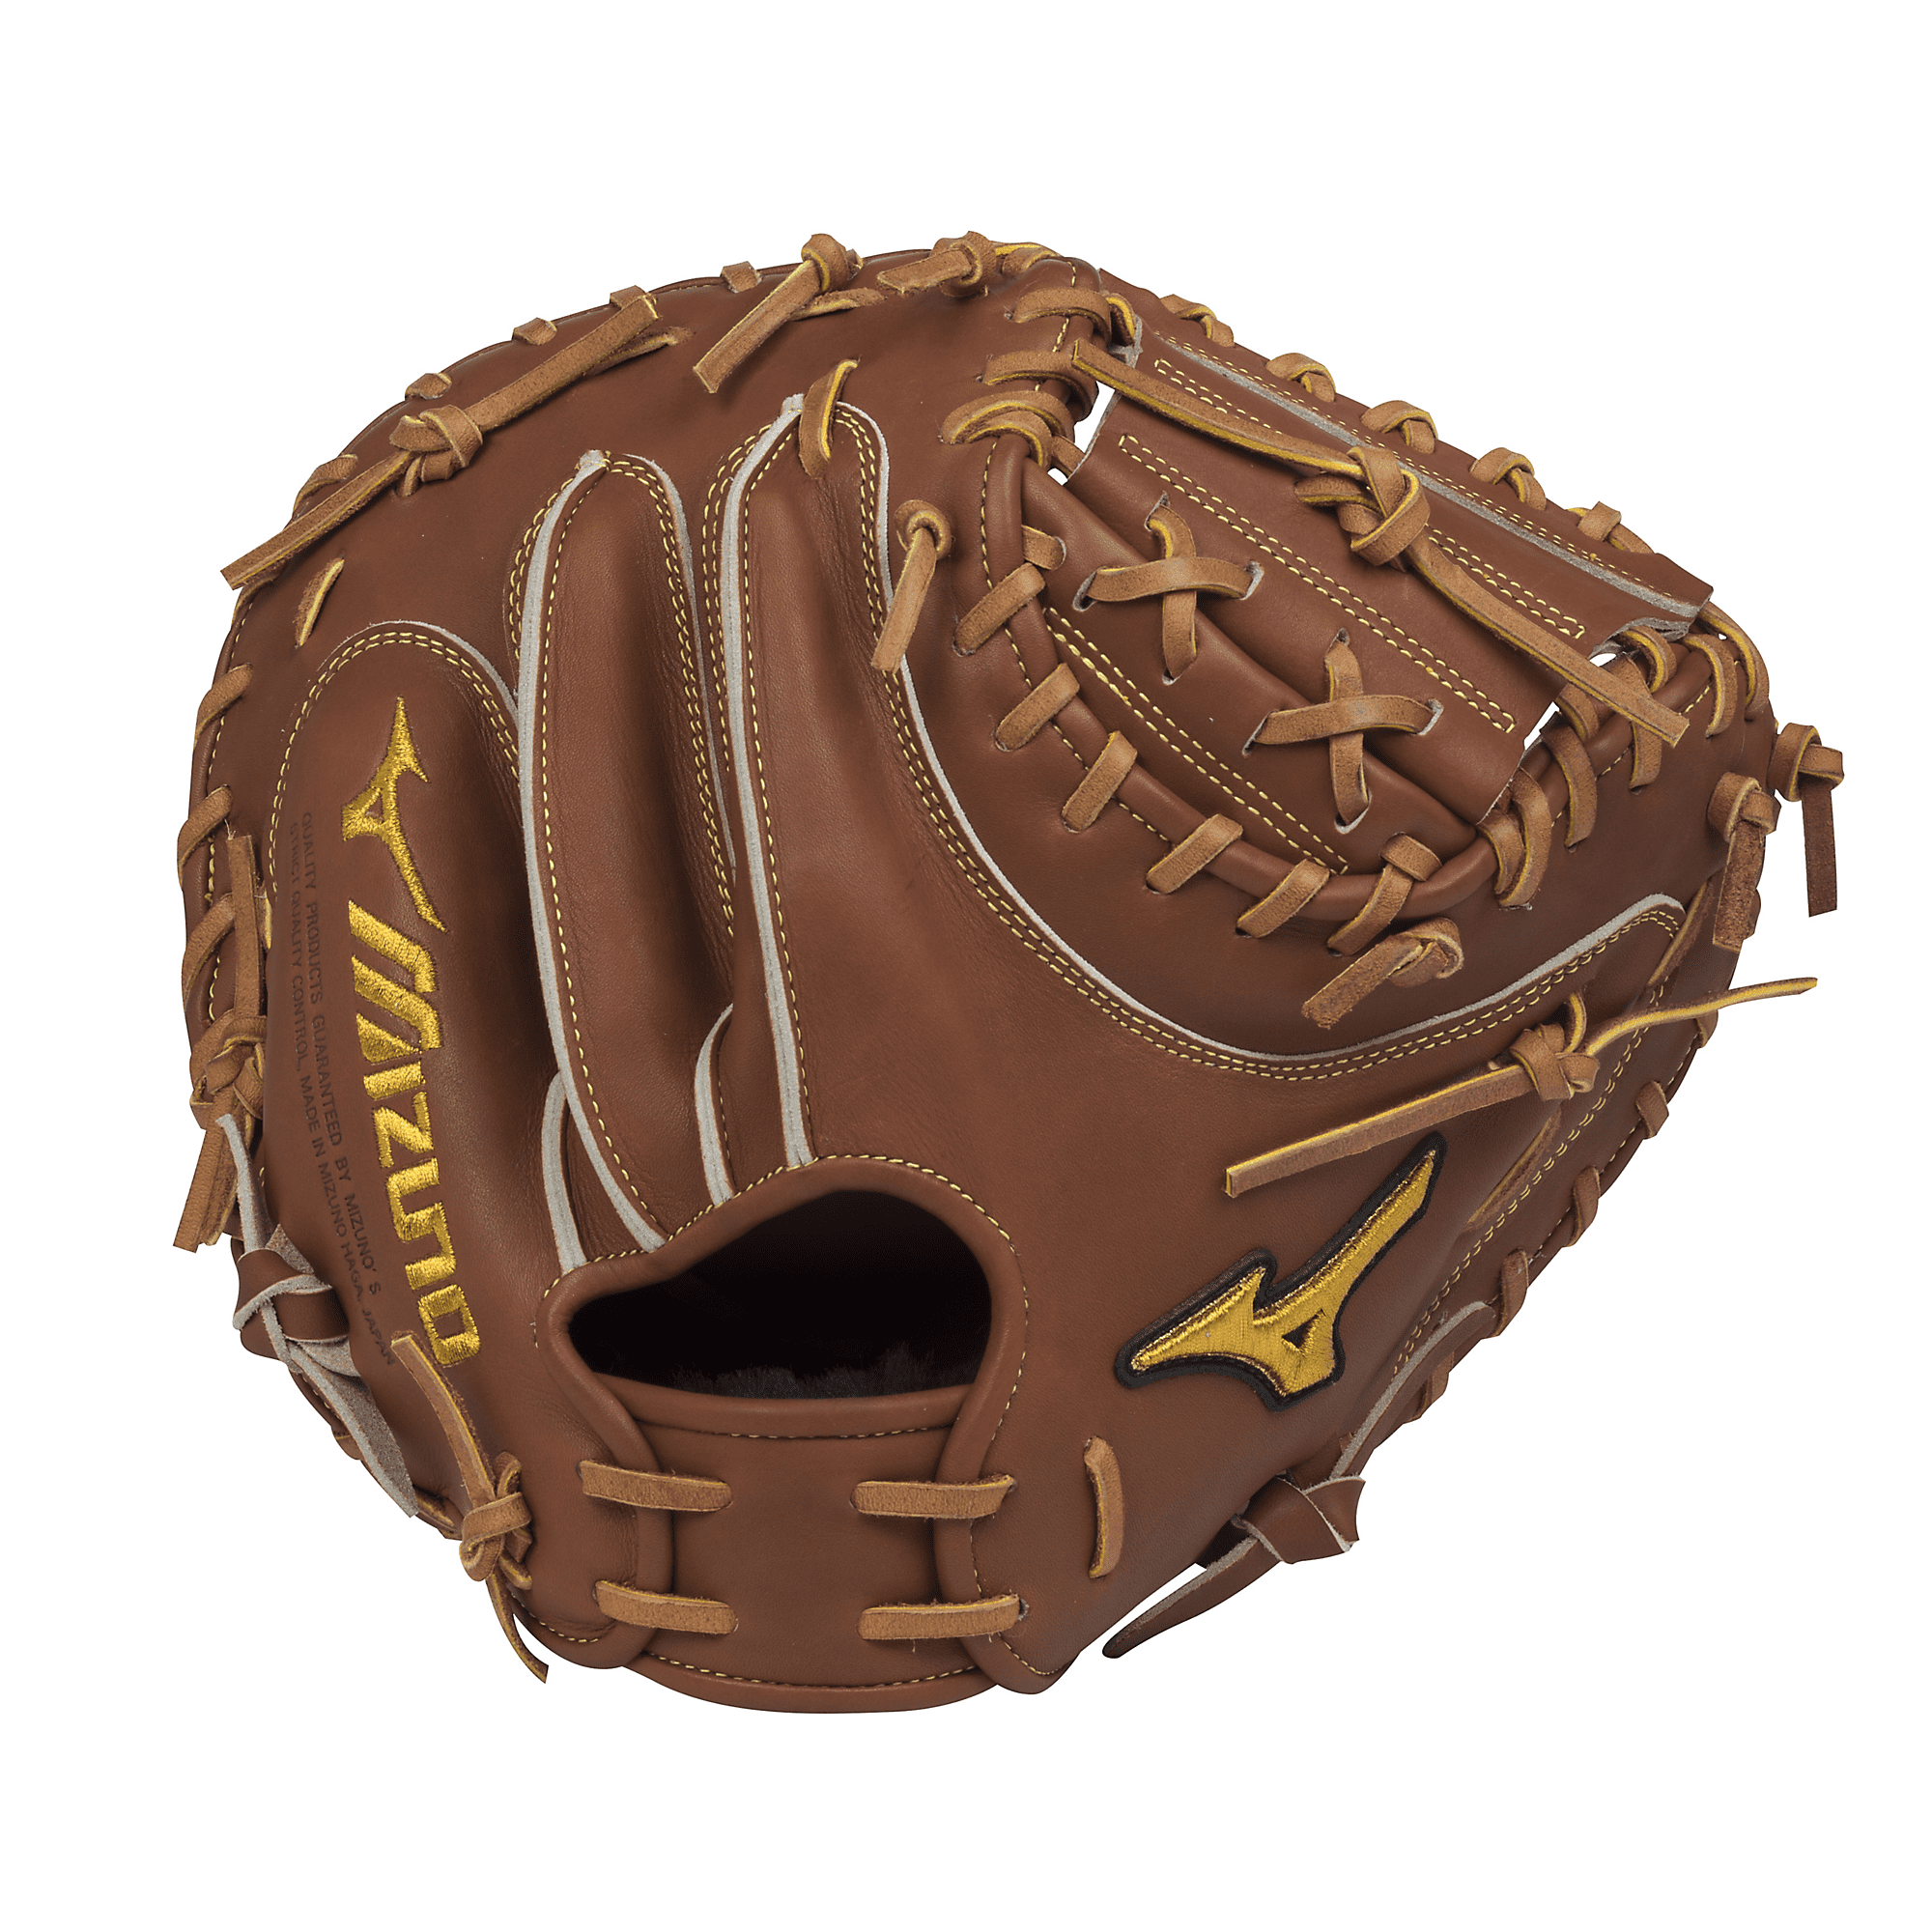 Mizuno Pro Limited Edition Baseball Catcher's Mitt 33.5 ...